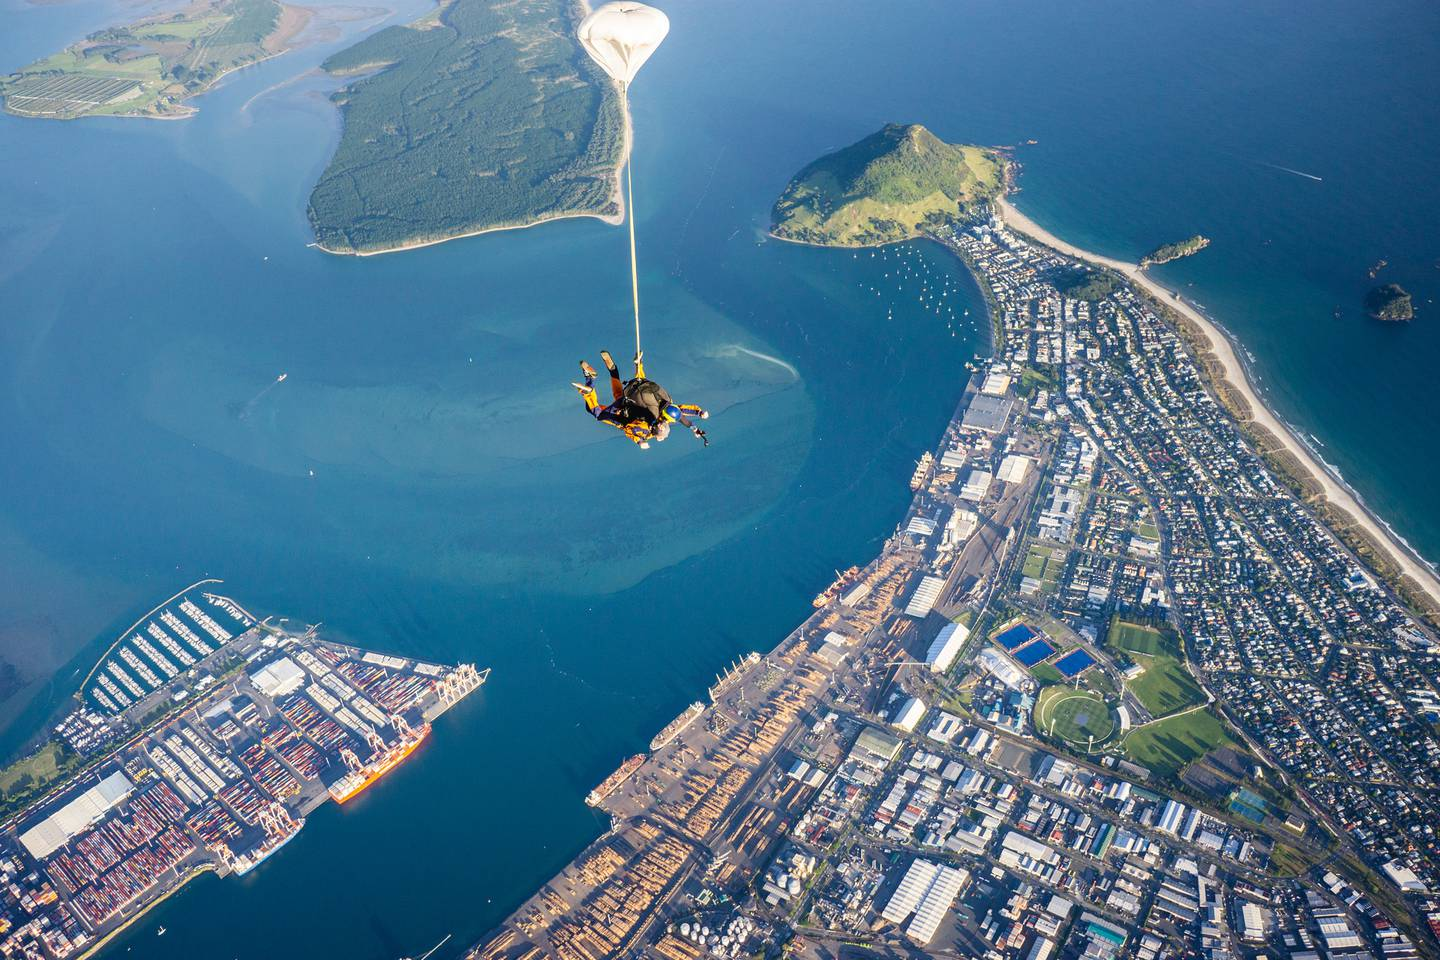 Richie McCaw completes his first ever skydive over Mt Maunganui. Photo: Supplied